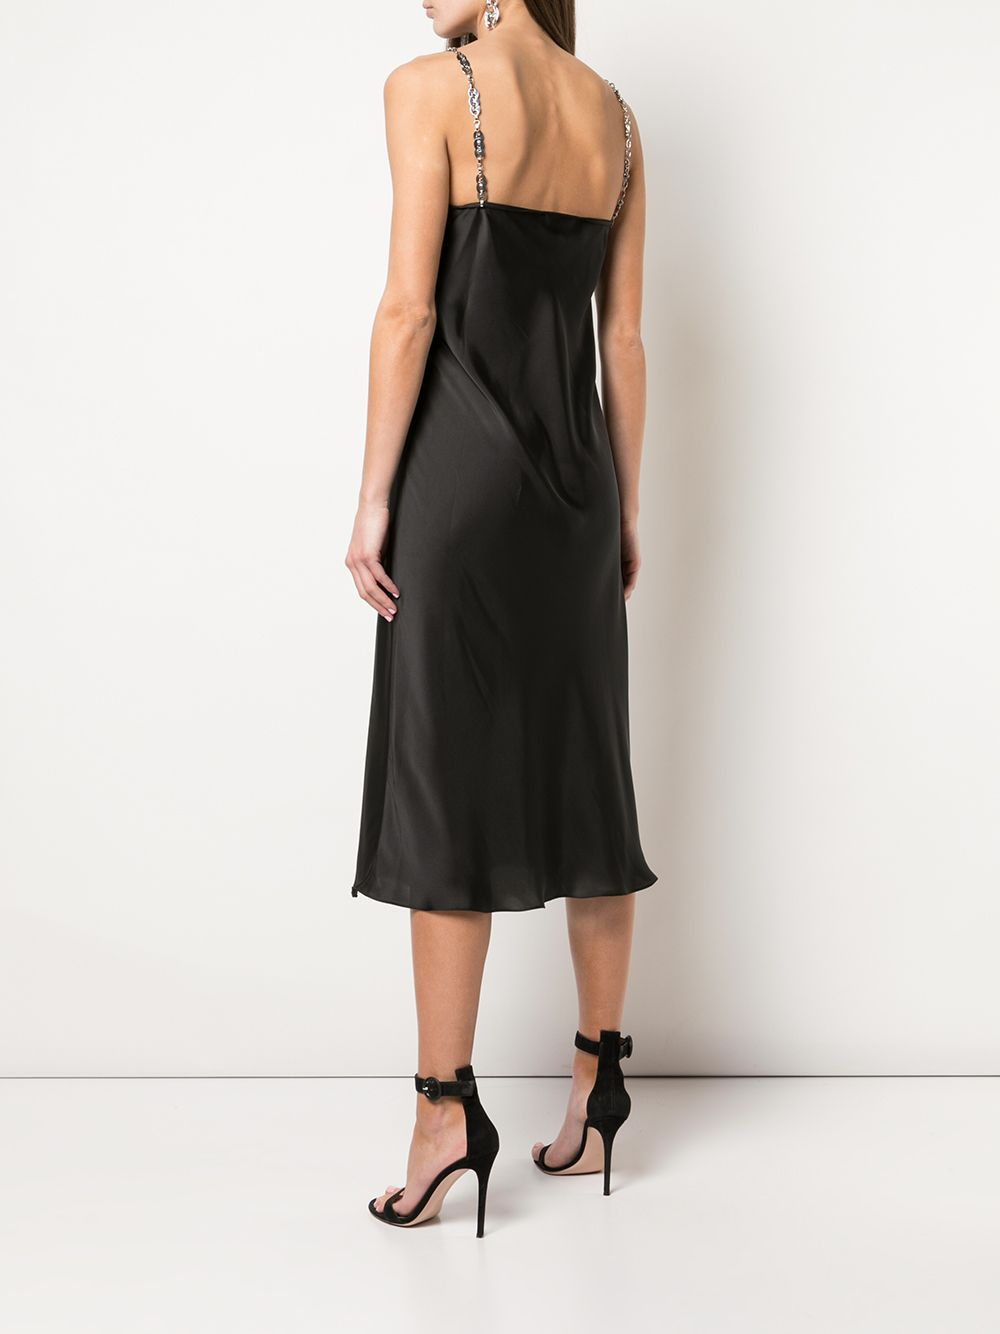 PACO RABANNE MID DRESS WITH STRAPS